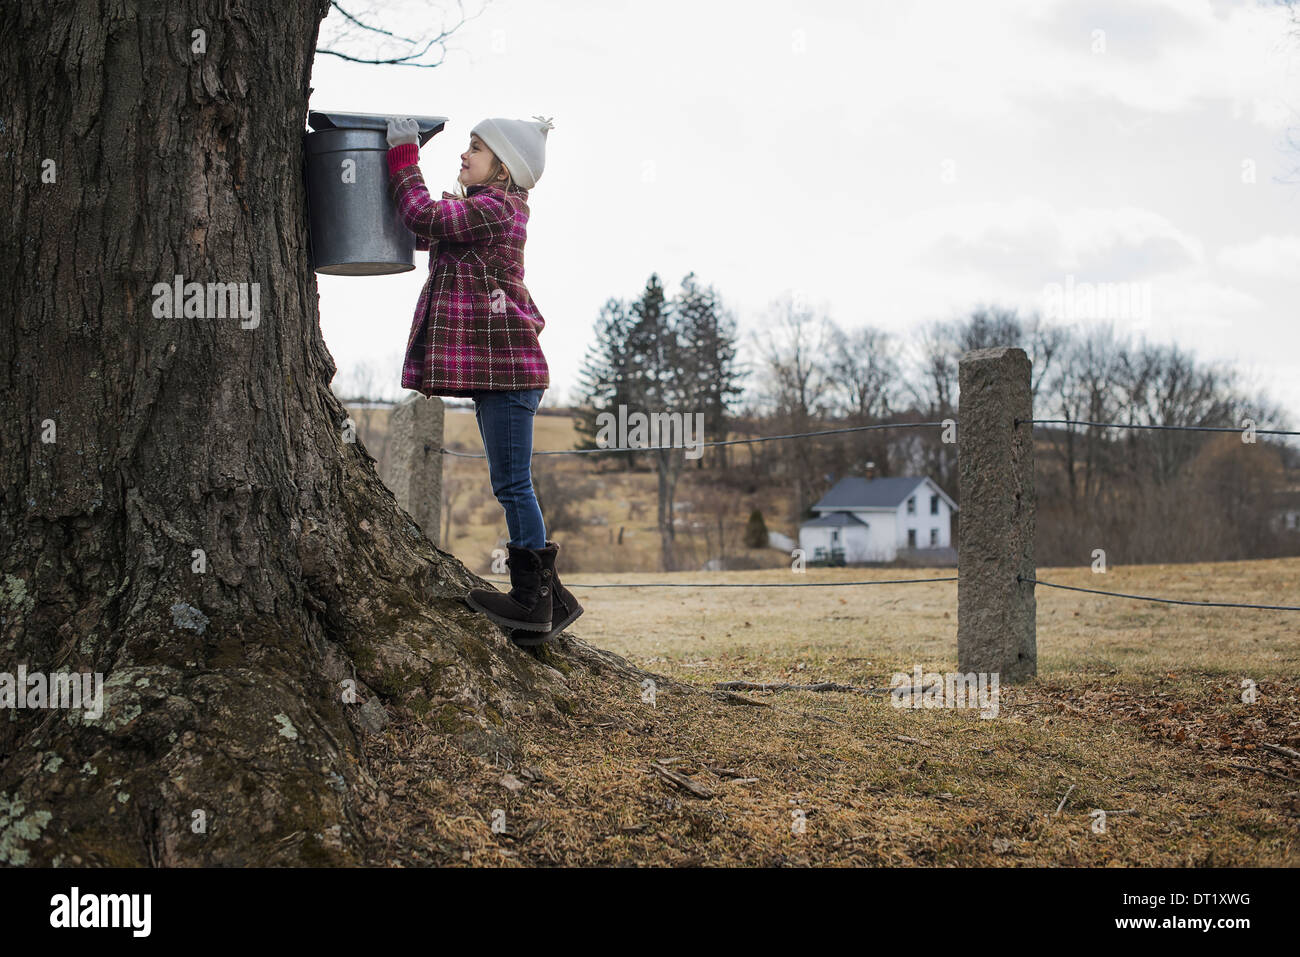 A maple syrup farm A young girl holding a bucket which is tapping the sap from the tree - Stock Image